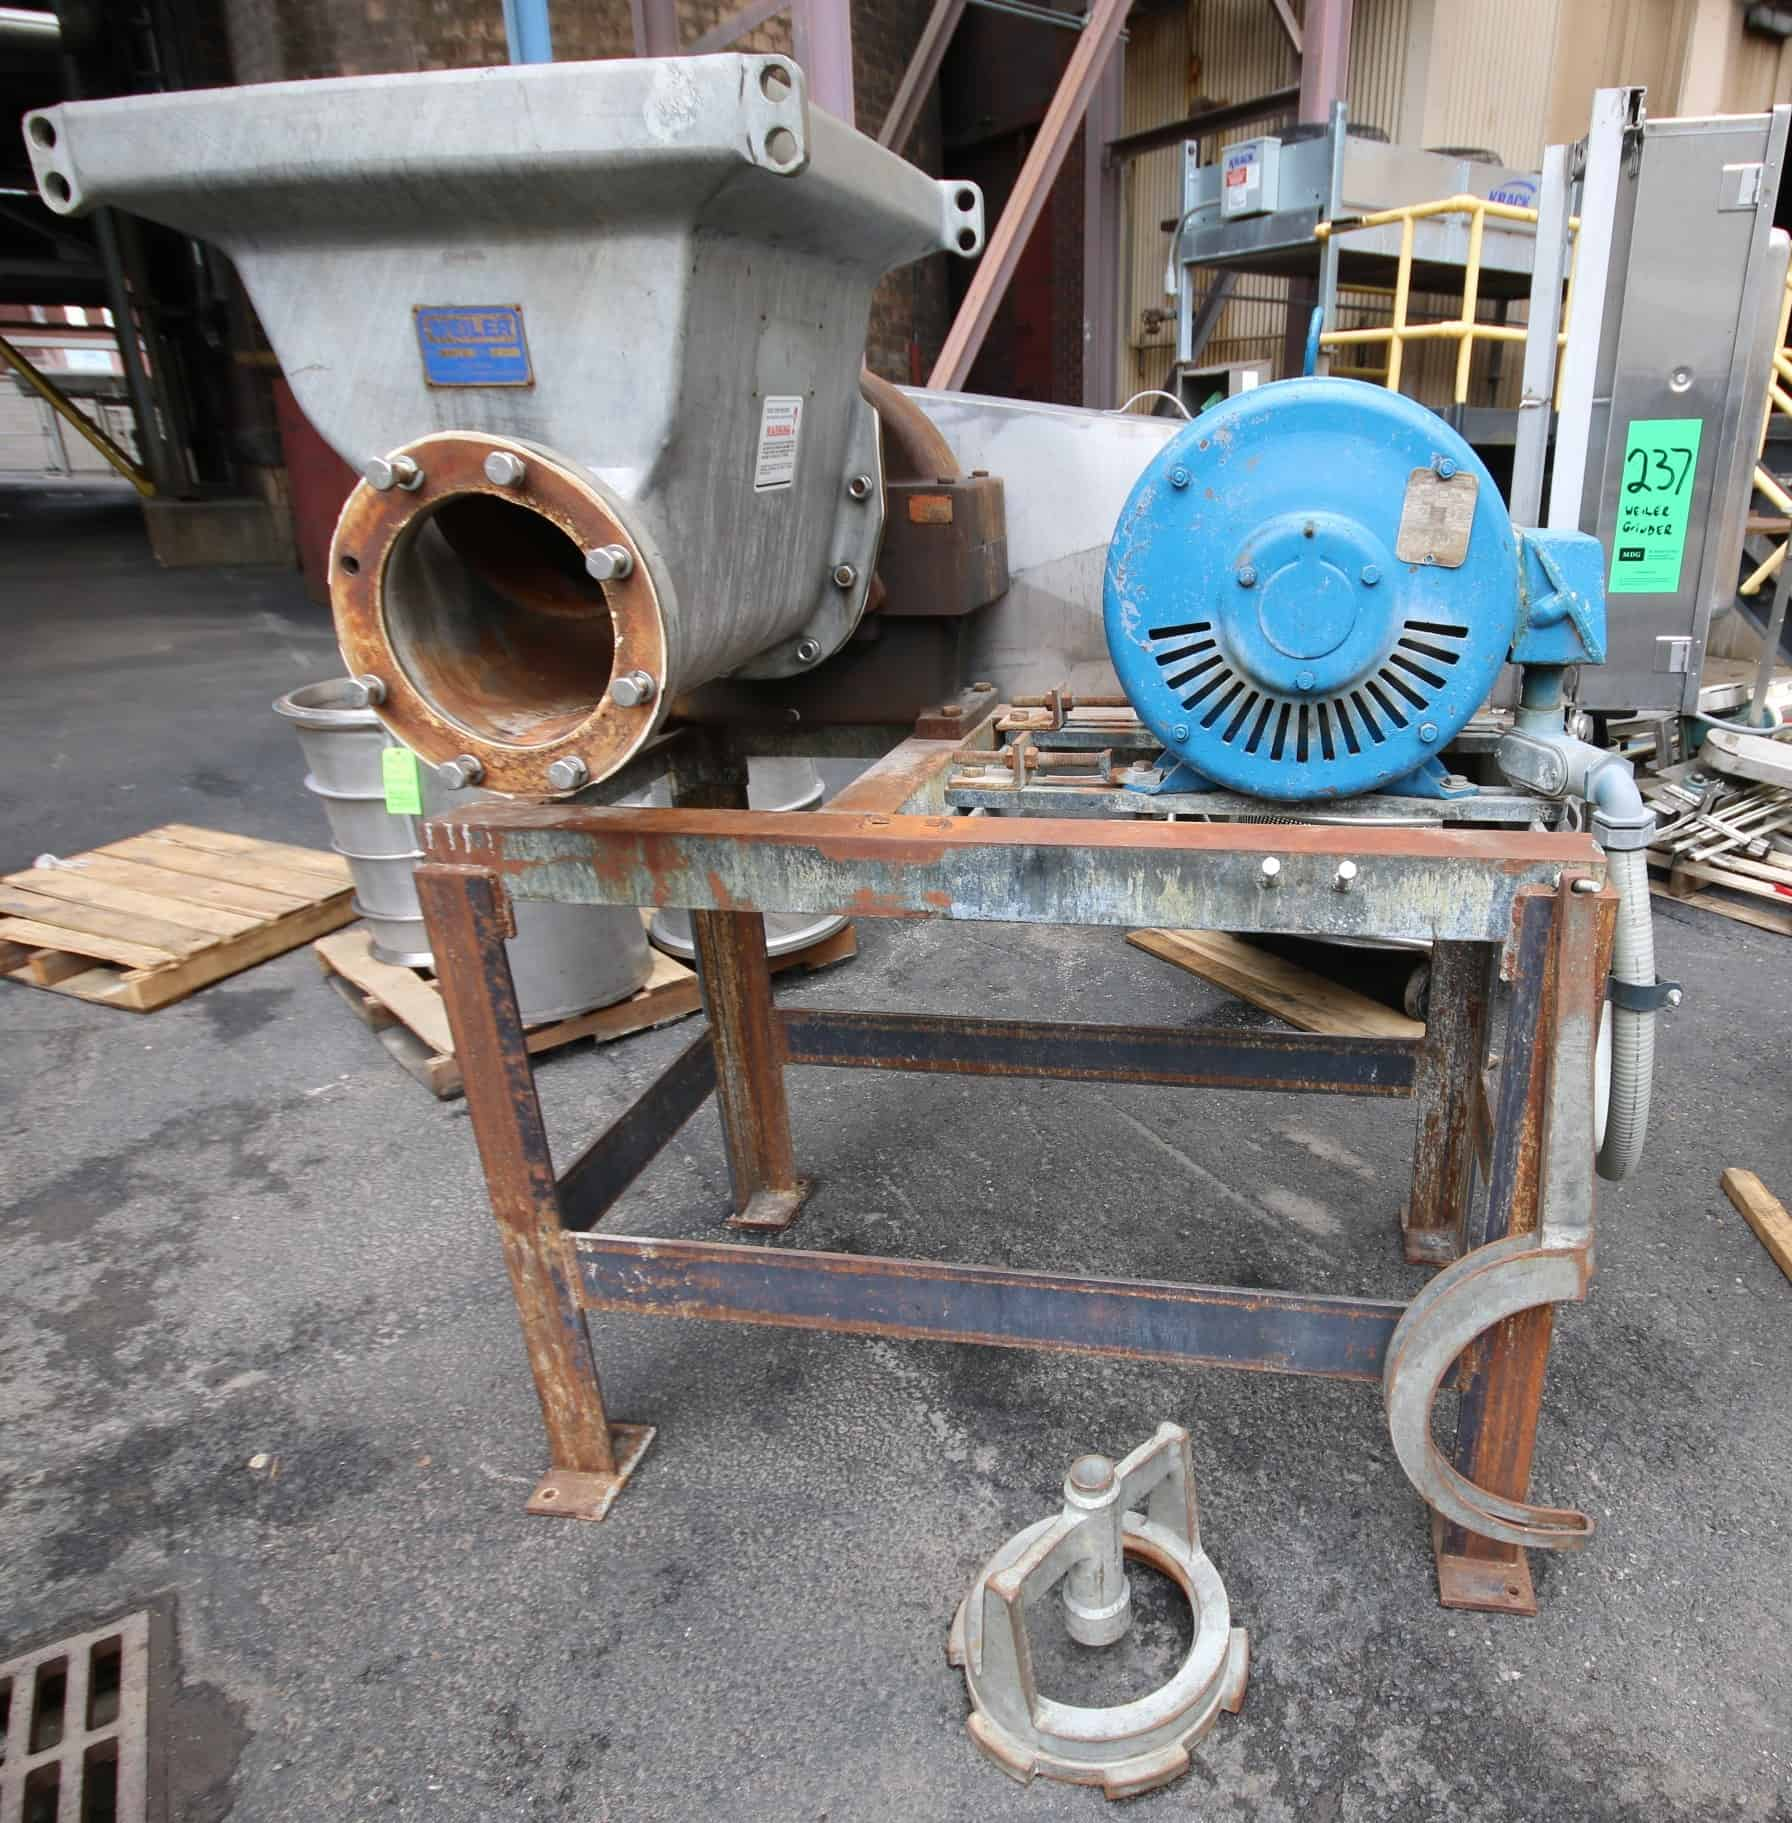 "Weiler Grinder, Model 1109, SN 76276RE, with 20"" W x 21"" L x 22"" D Opening, Weiler Drive Model 13985HAB, Lincoln 75 hp / 1755 RPM Motor, 208/220/240V 3 Phase with Square D 200 Amp S/S Safety Switch, Mounted on Steel Frame, Includes On-Board Wrench"